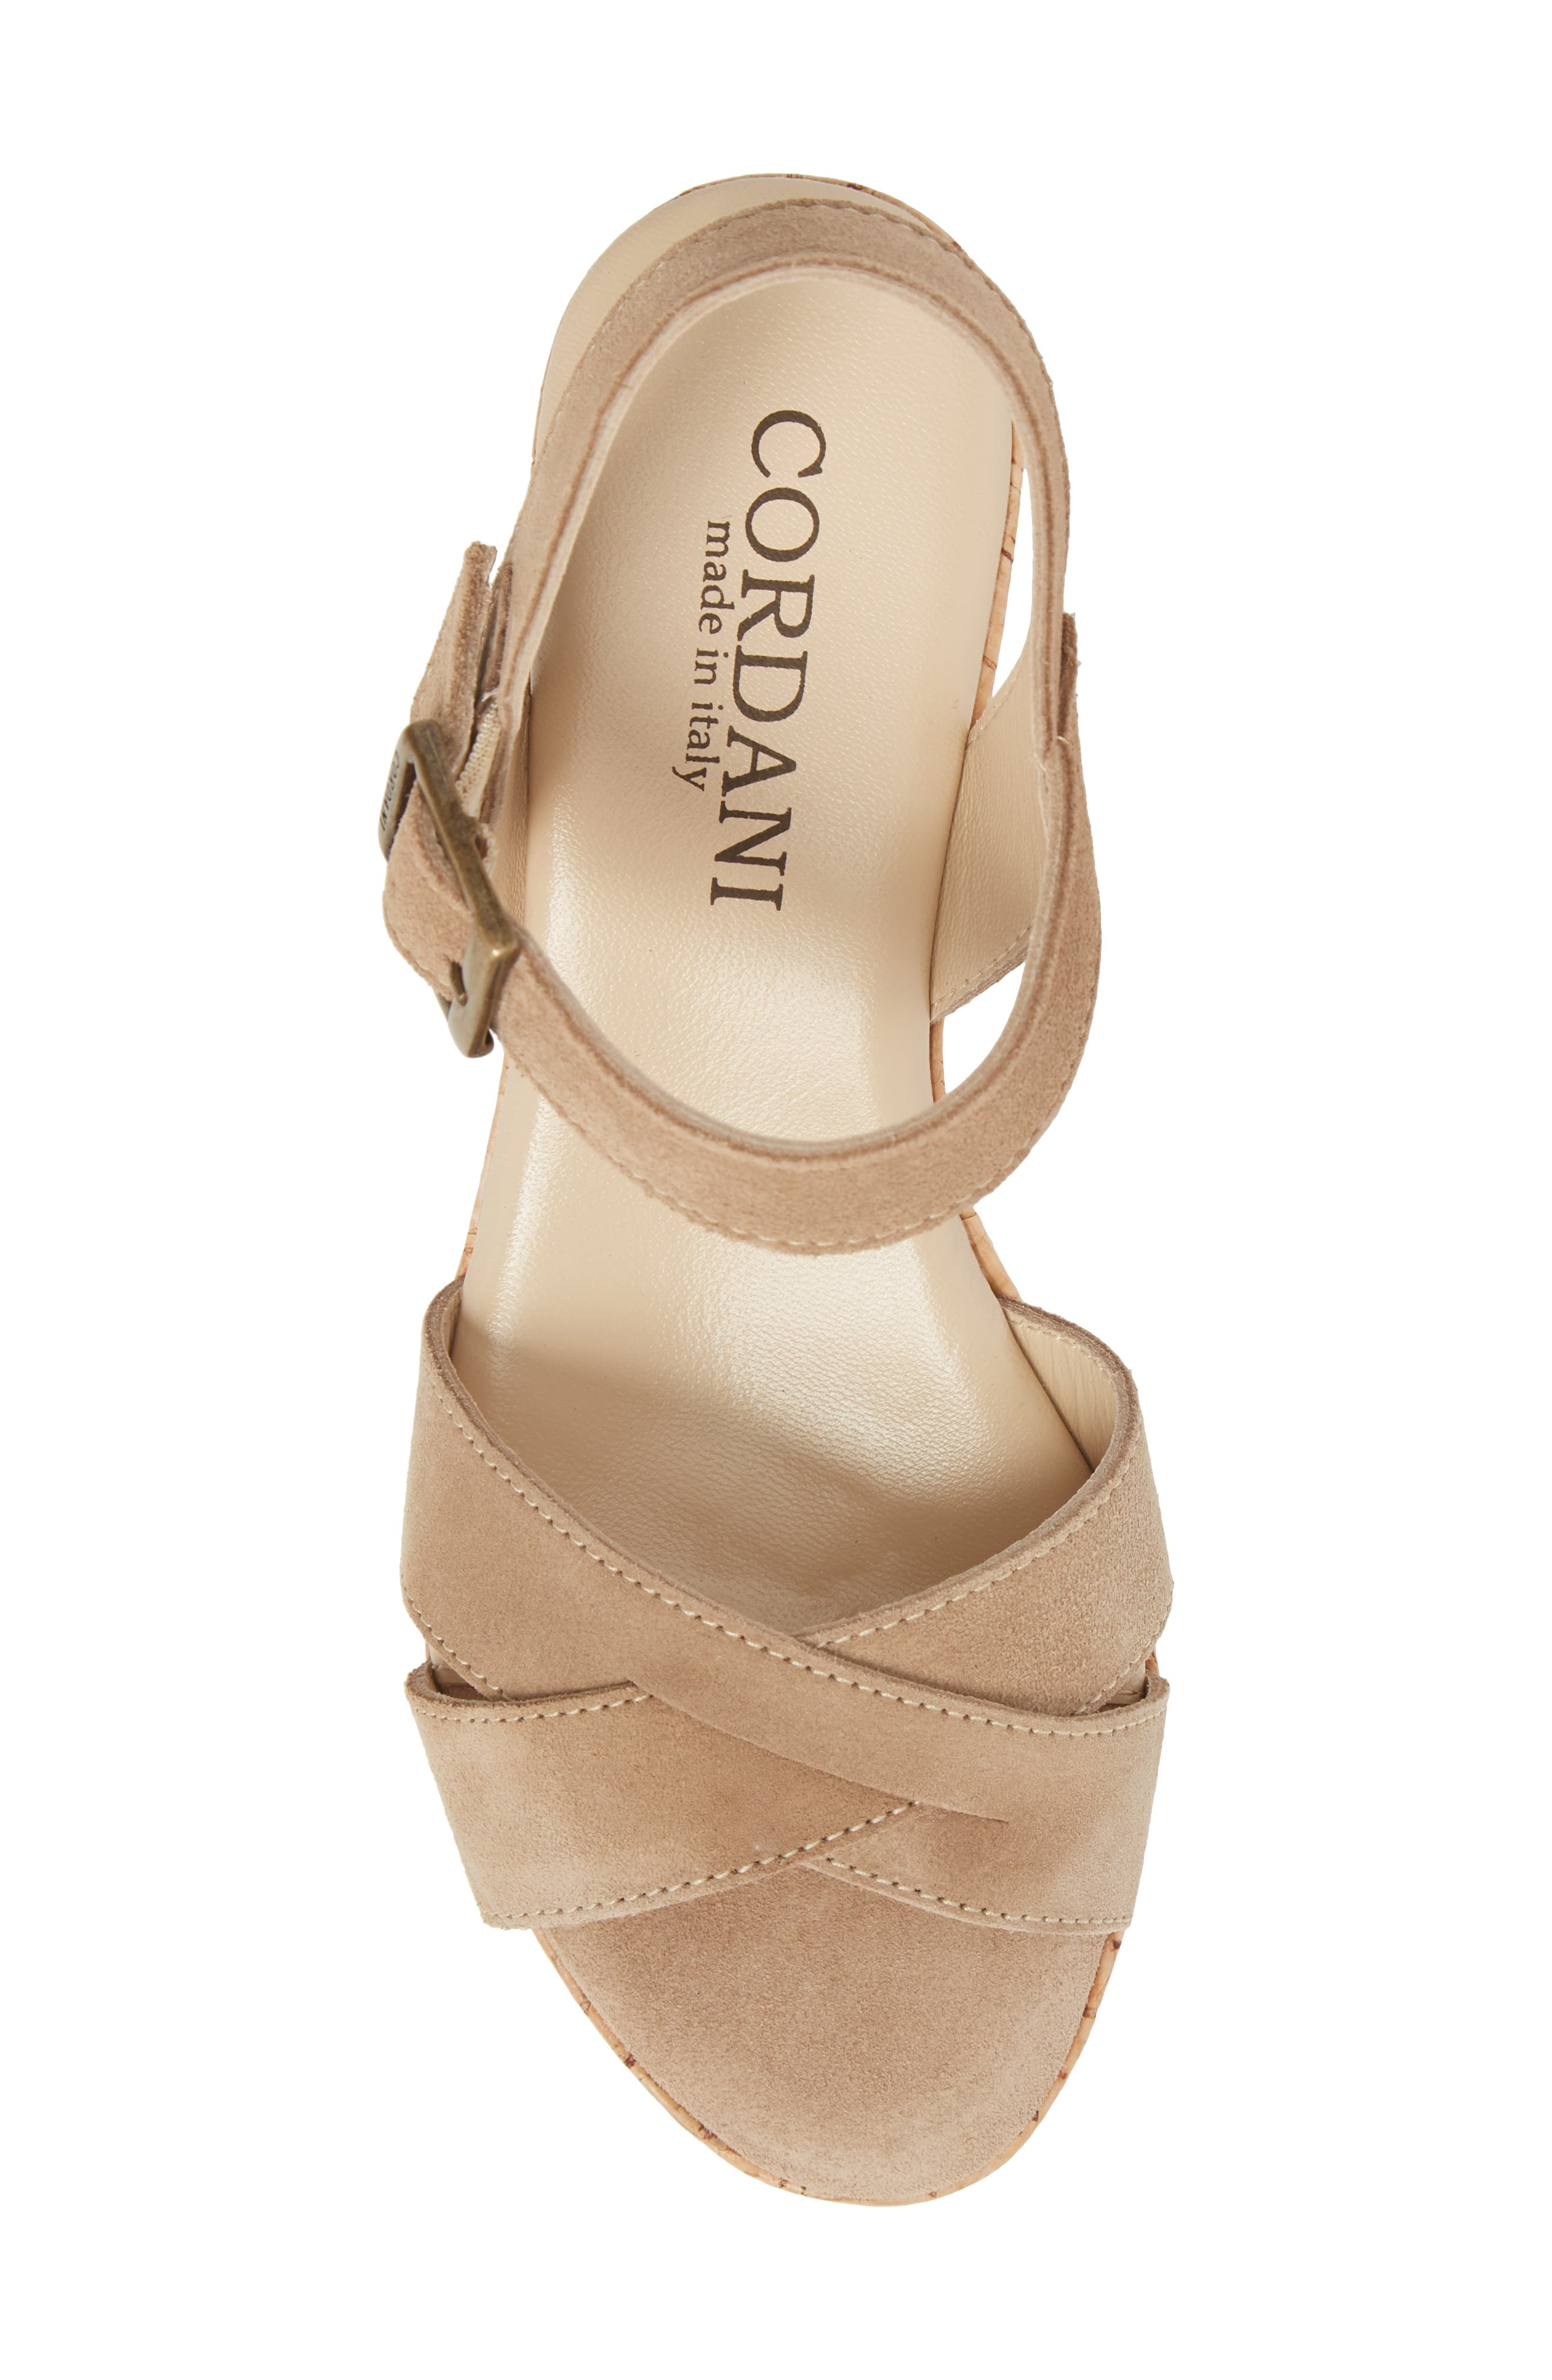 Candy Wedge Sandal,                             Alternate thumbnail 5, color,                             CORDA SUEDE